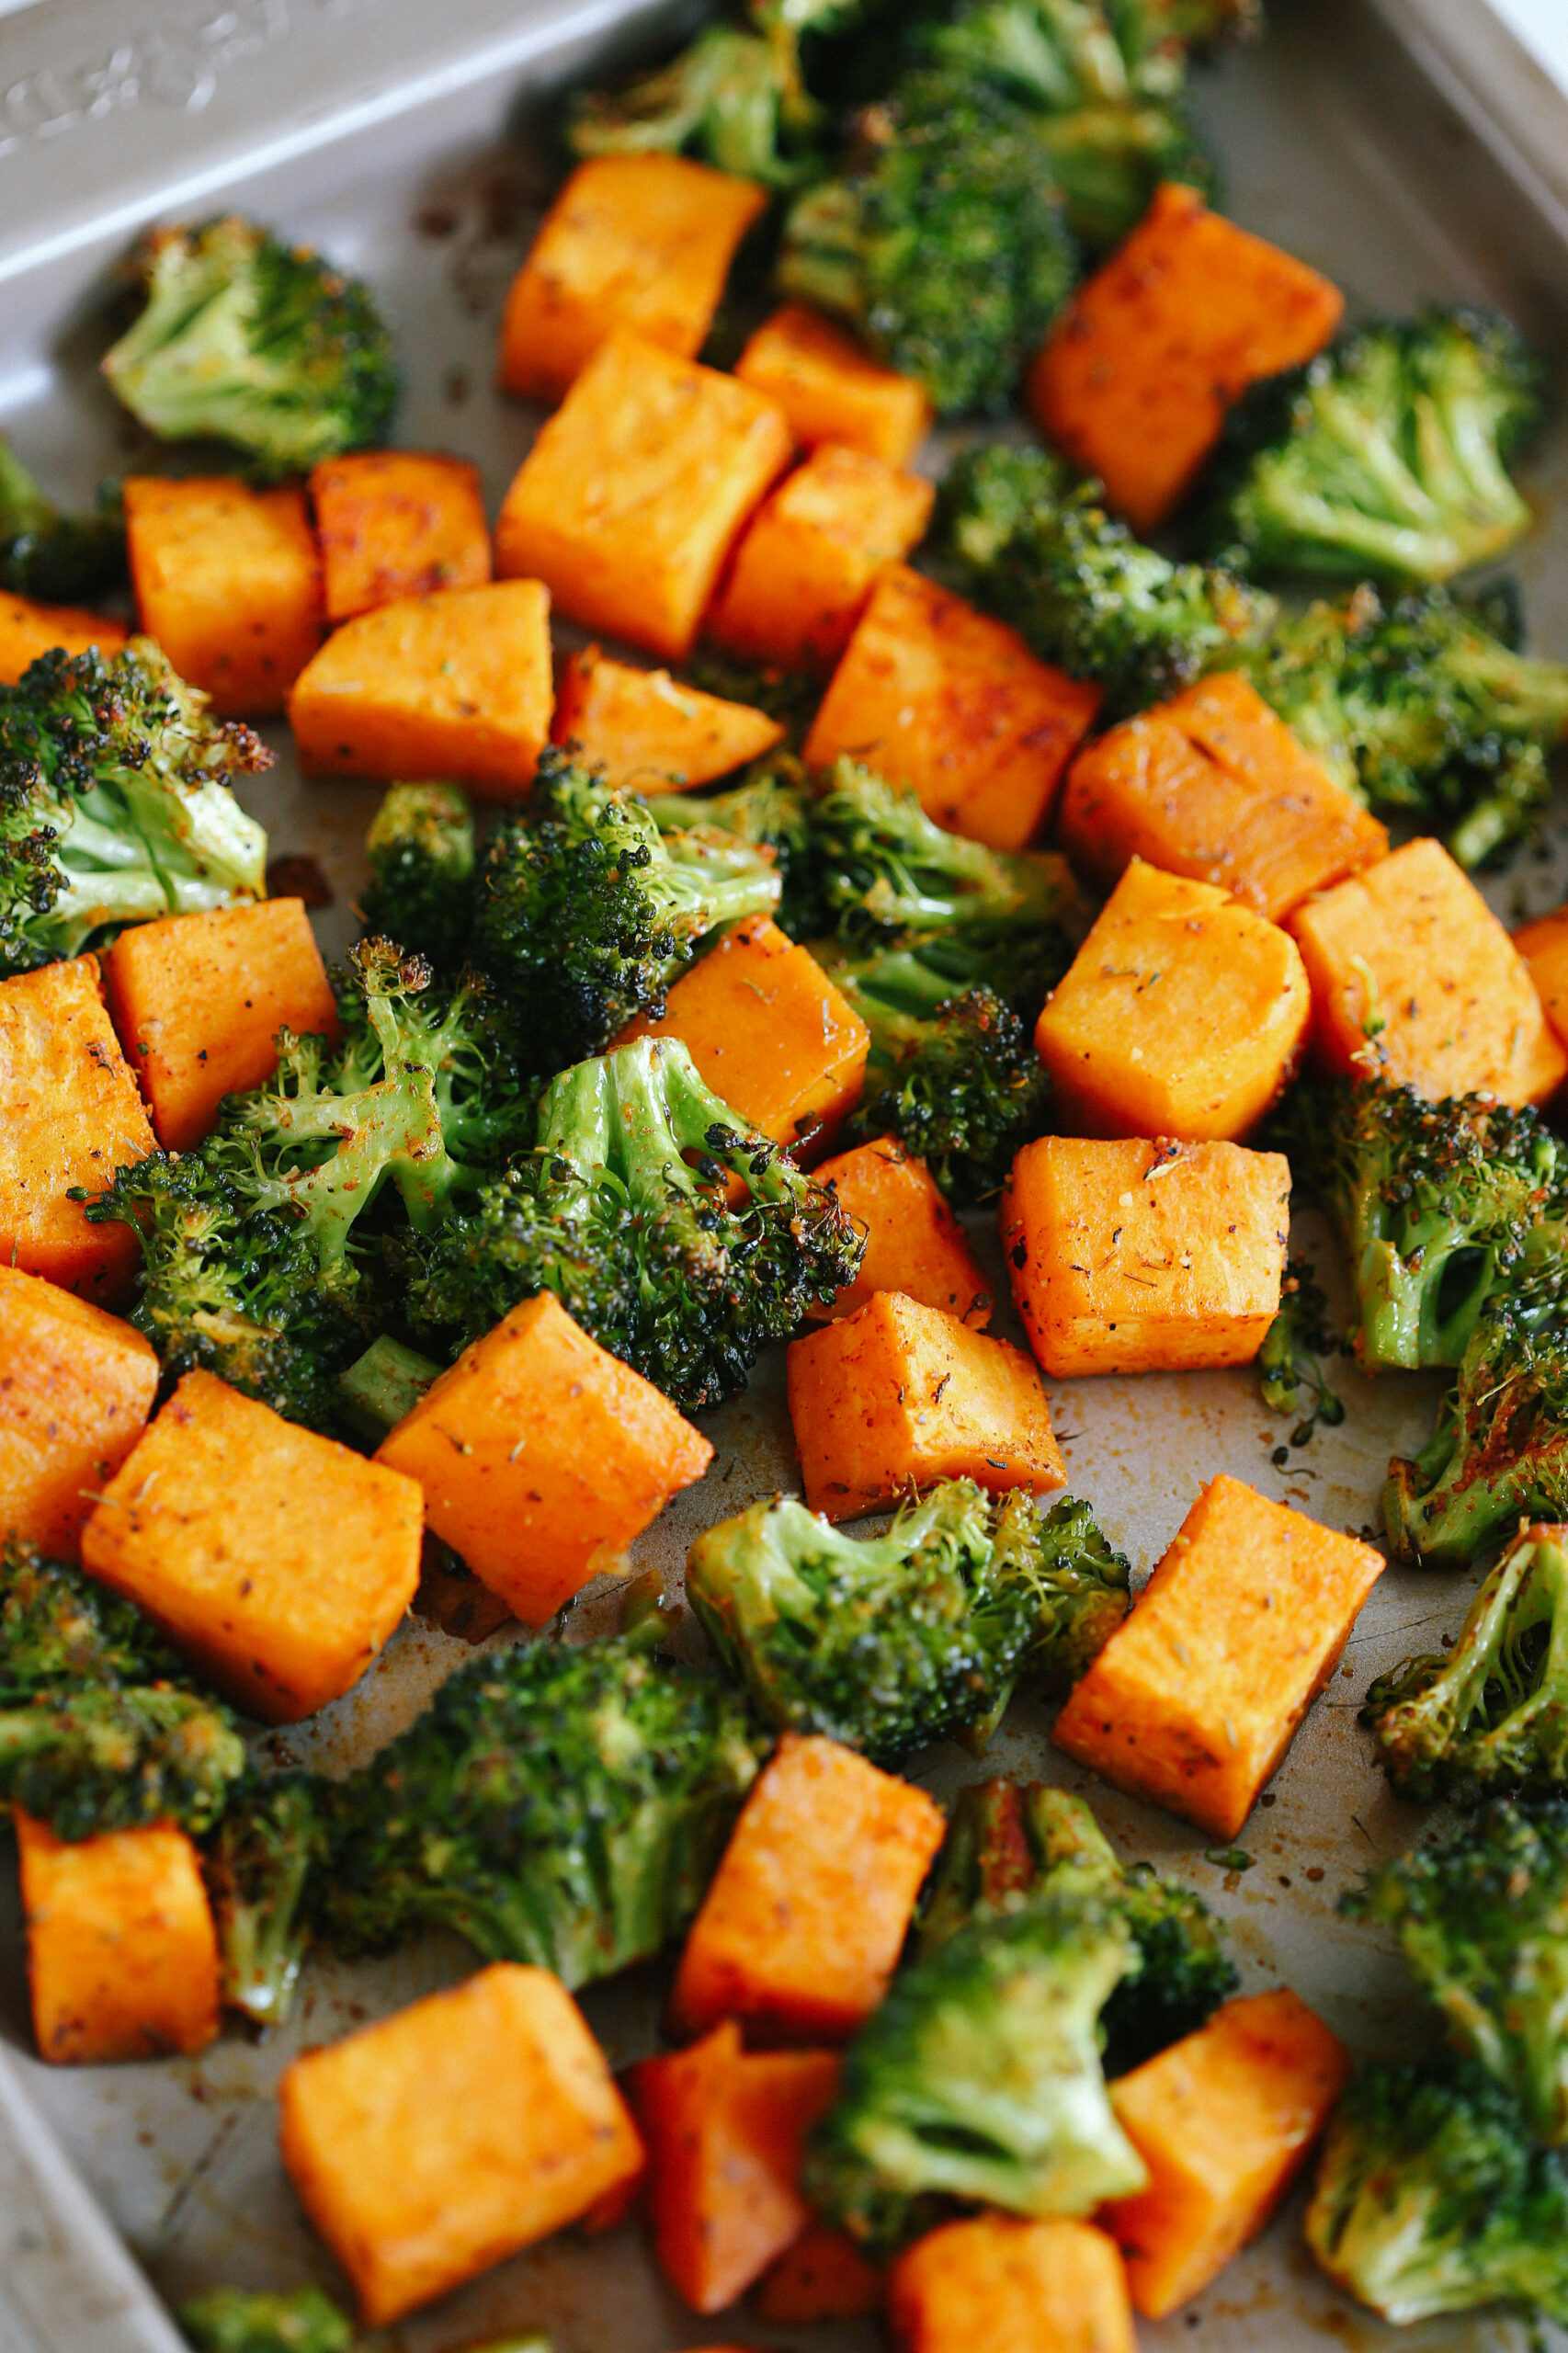 Perfectly Roasted Broccoli & Sweet Potatoes - Healthy Vegetarian Recipes Dinner